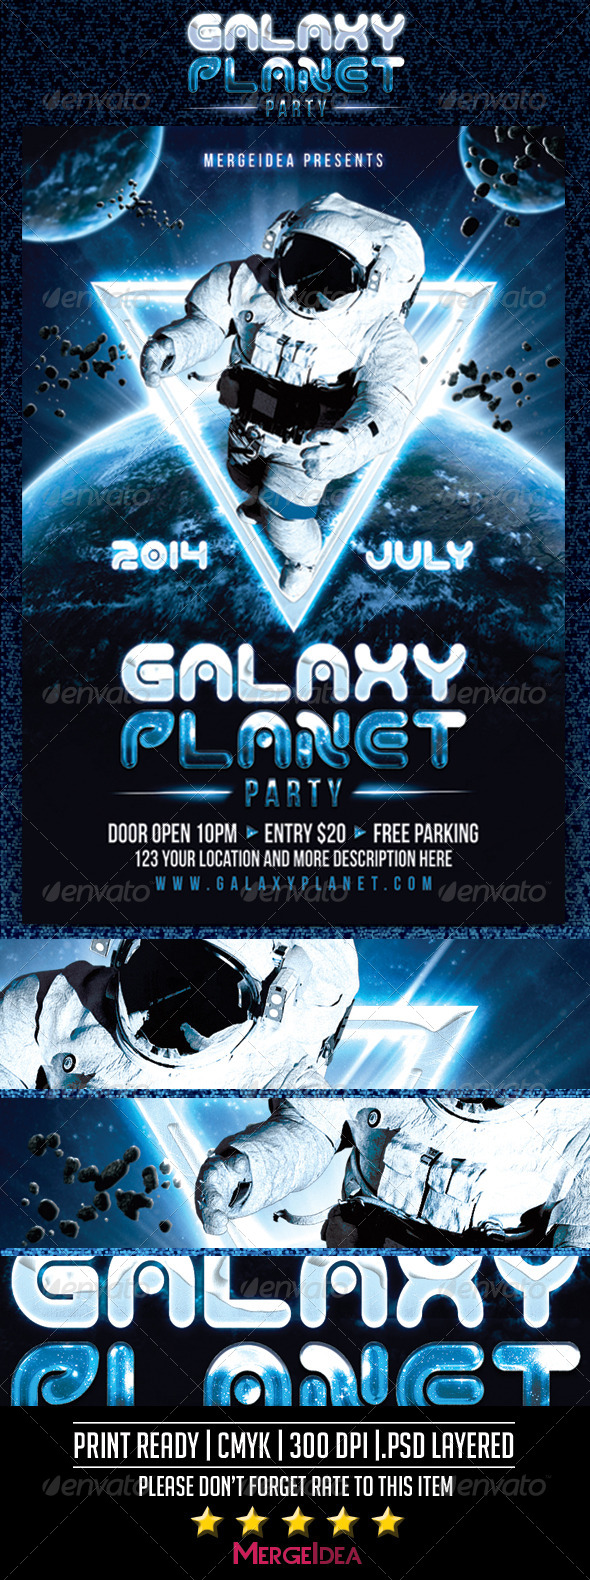 Galaxy Planet Party Flyer by MergeIdea | GraphicRiver